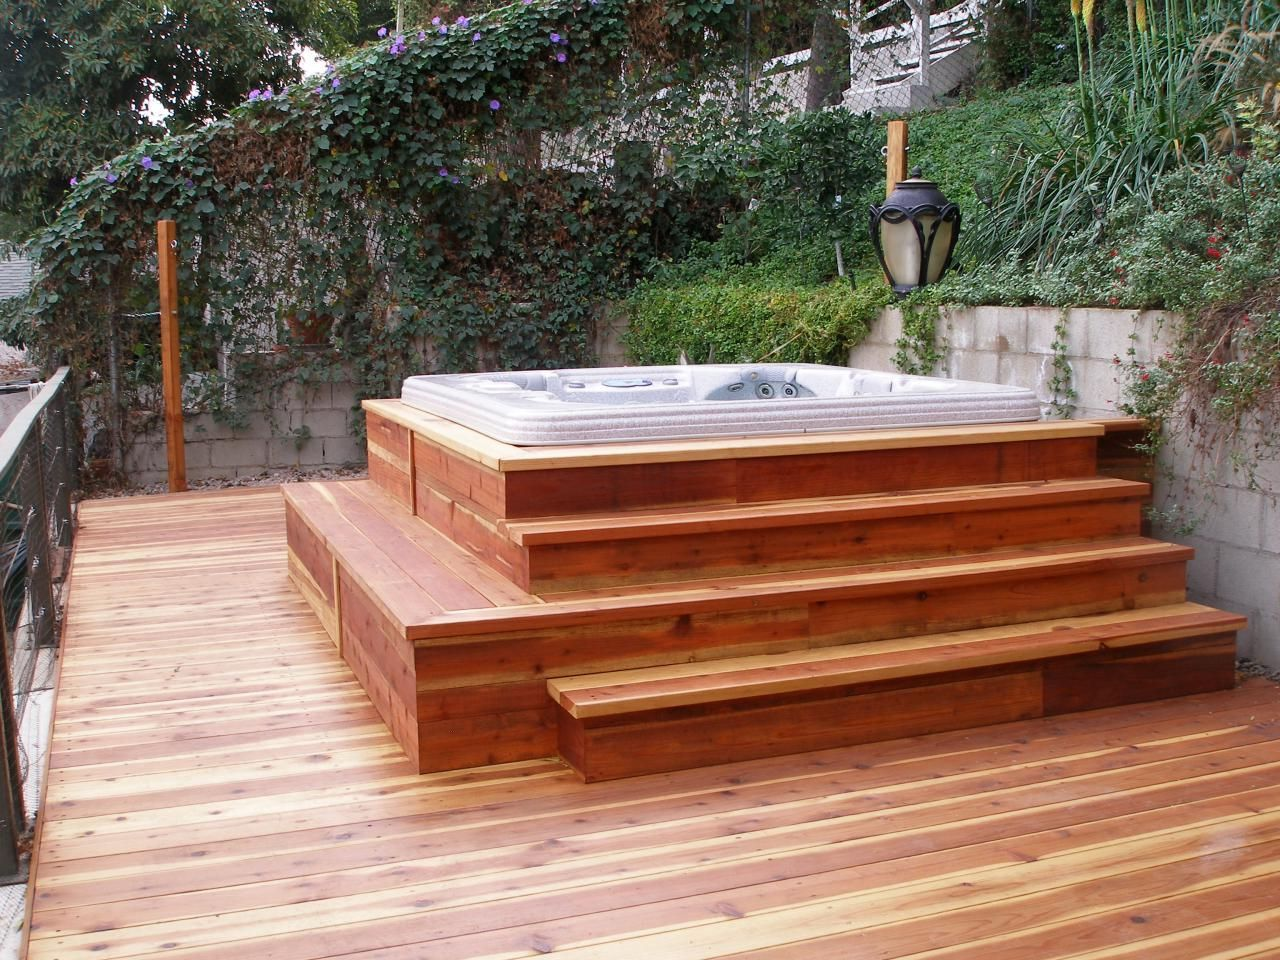 Outdoor Backyard Deck Designs With Hot Tub Ideas Lovely Hot